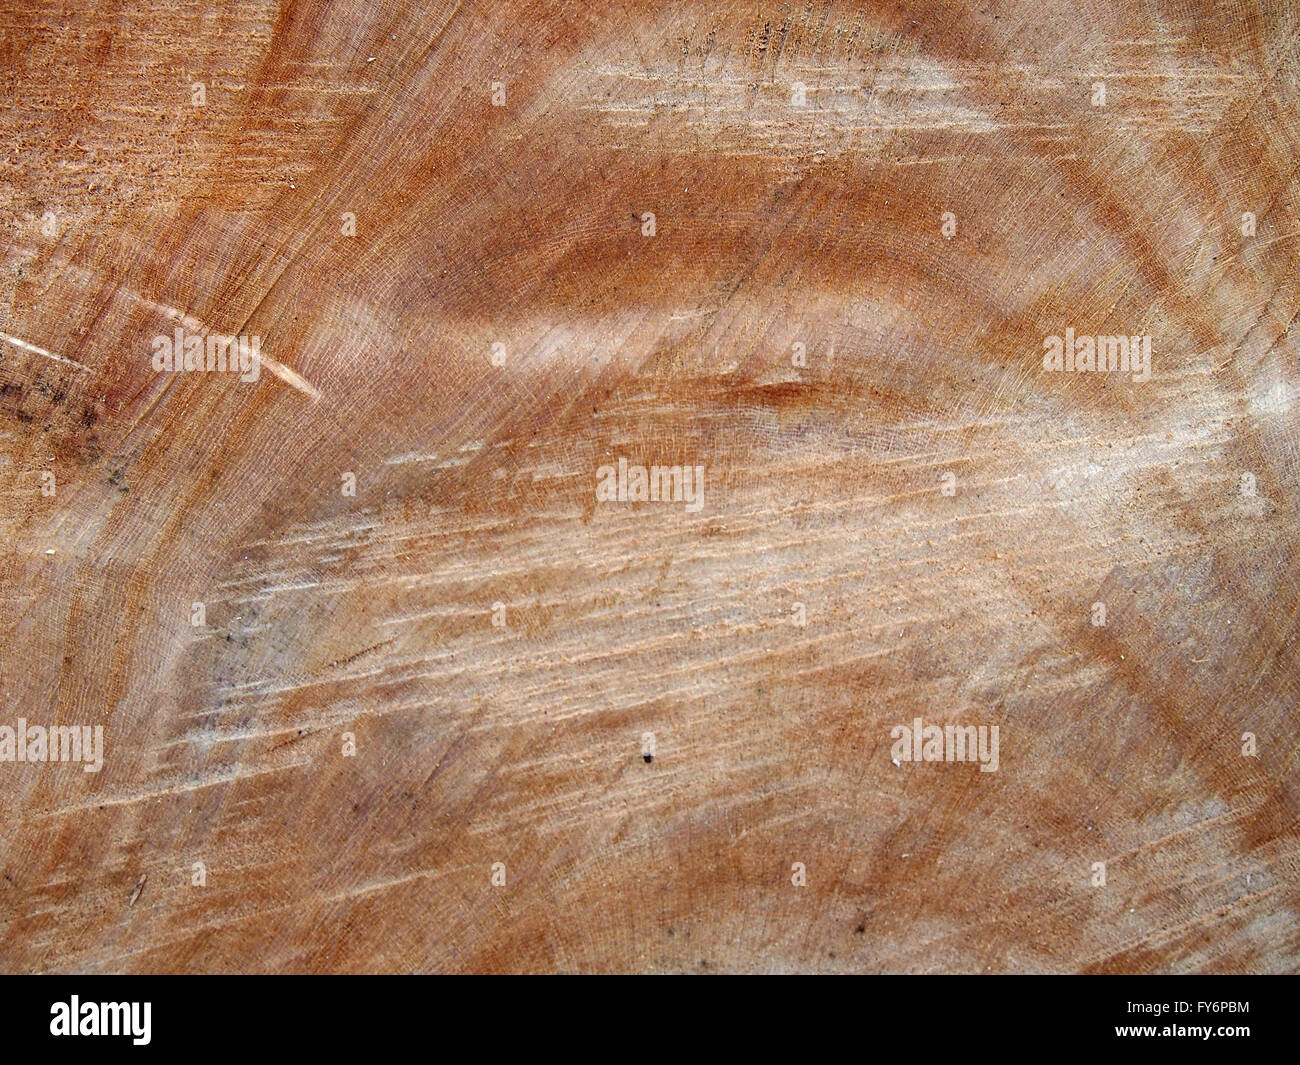 Chainsaw cut tree reddish brown trunk close-up - Stock Image